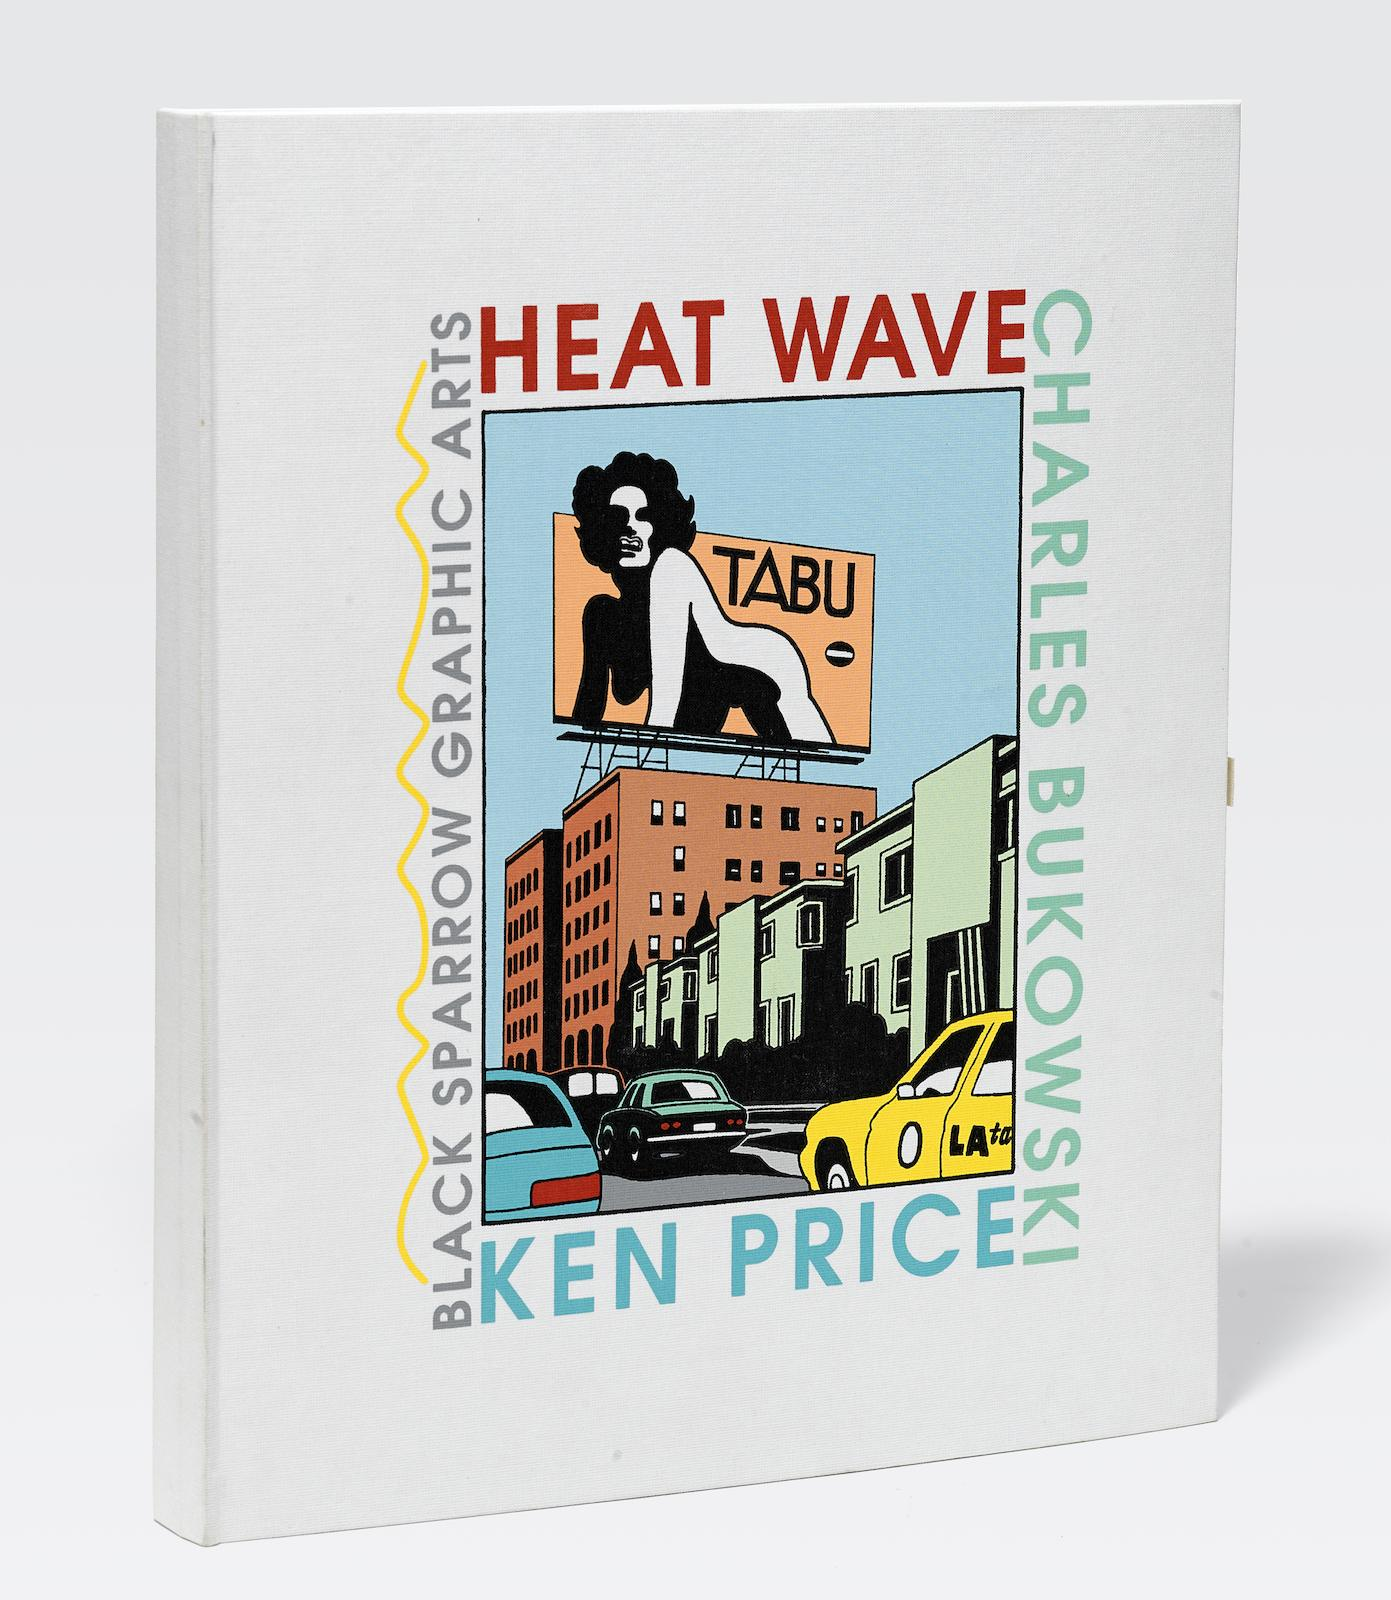 Ken Price-Charles Bukowski, Heat Wave, 1995-1995